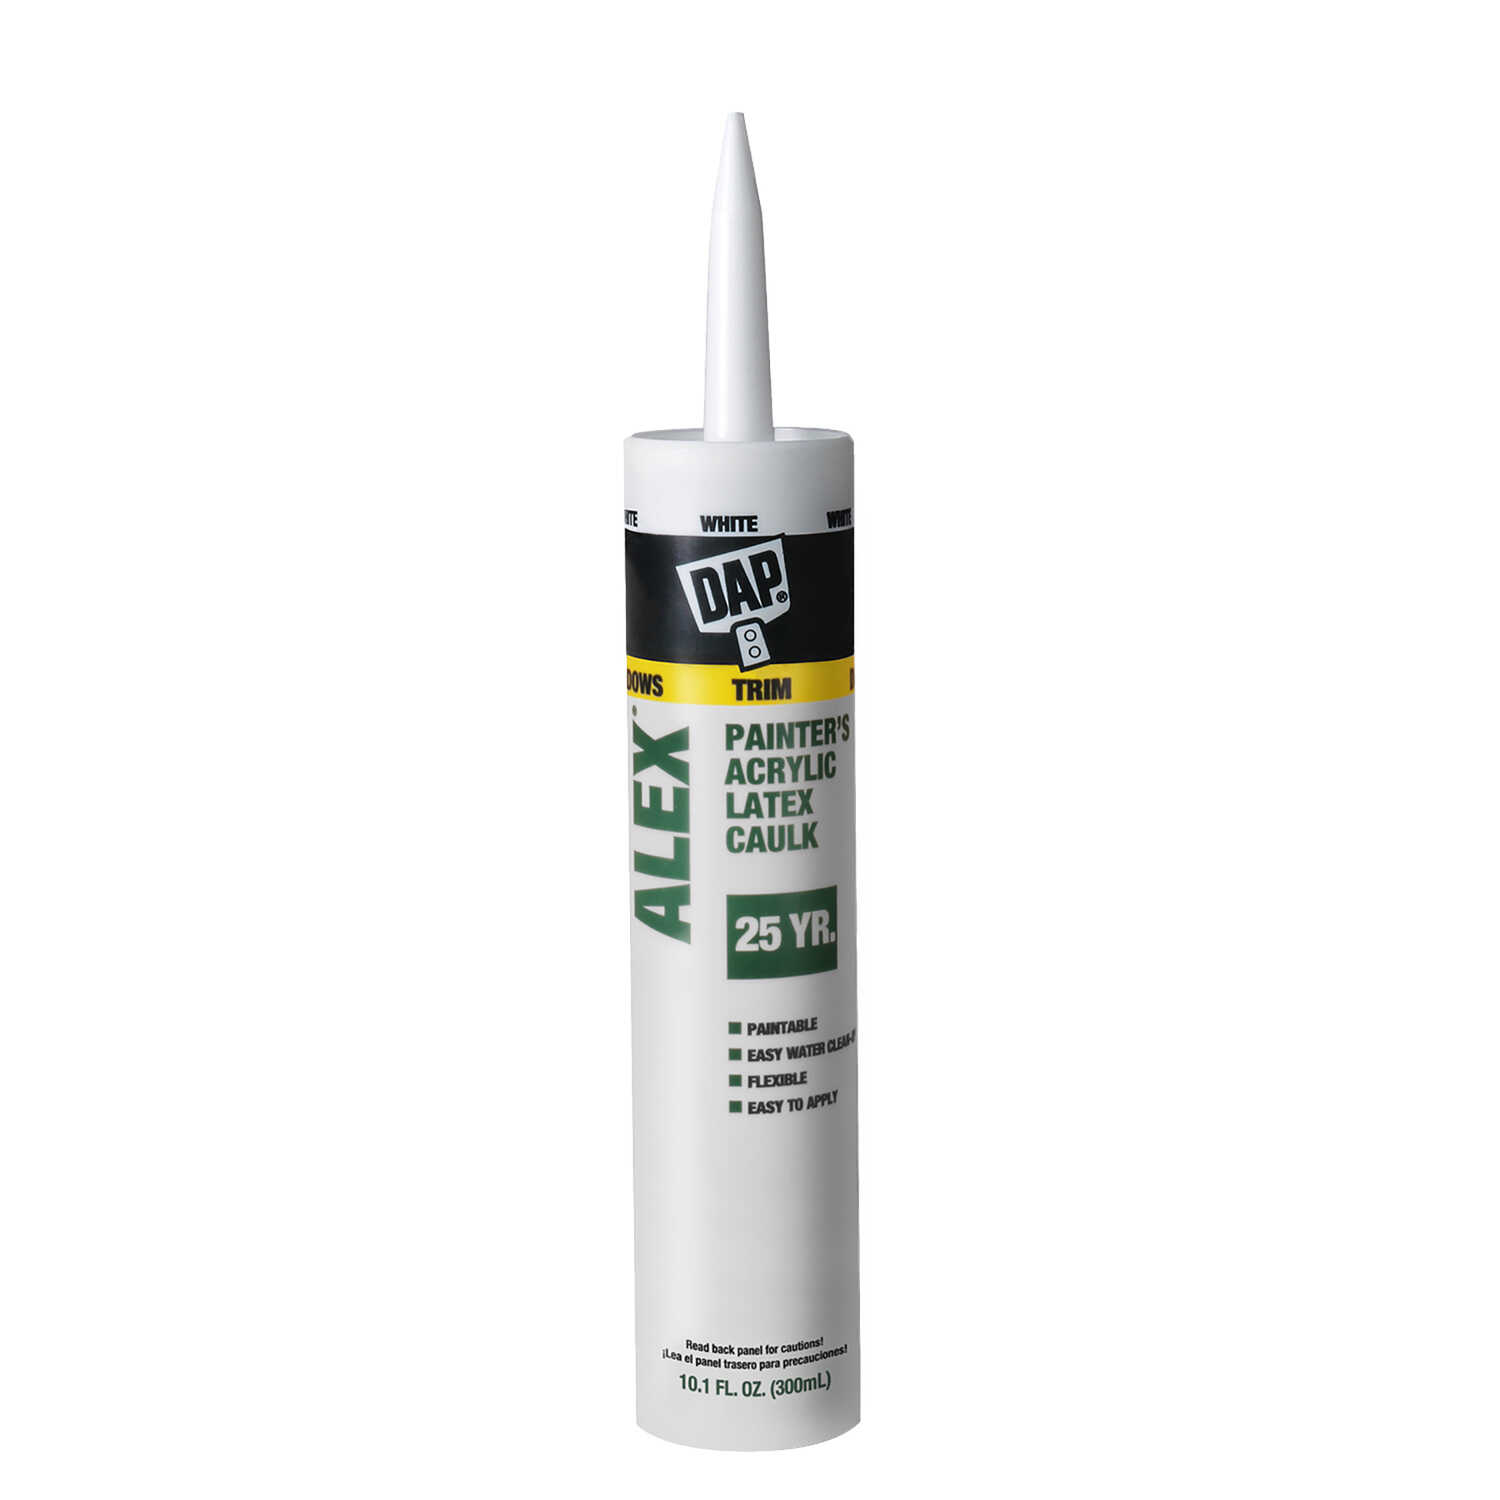 DAP  White  Latex  Caulk  10.1 oz.